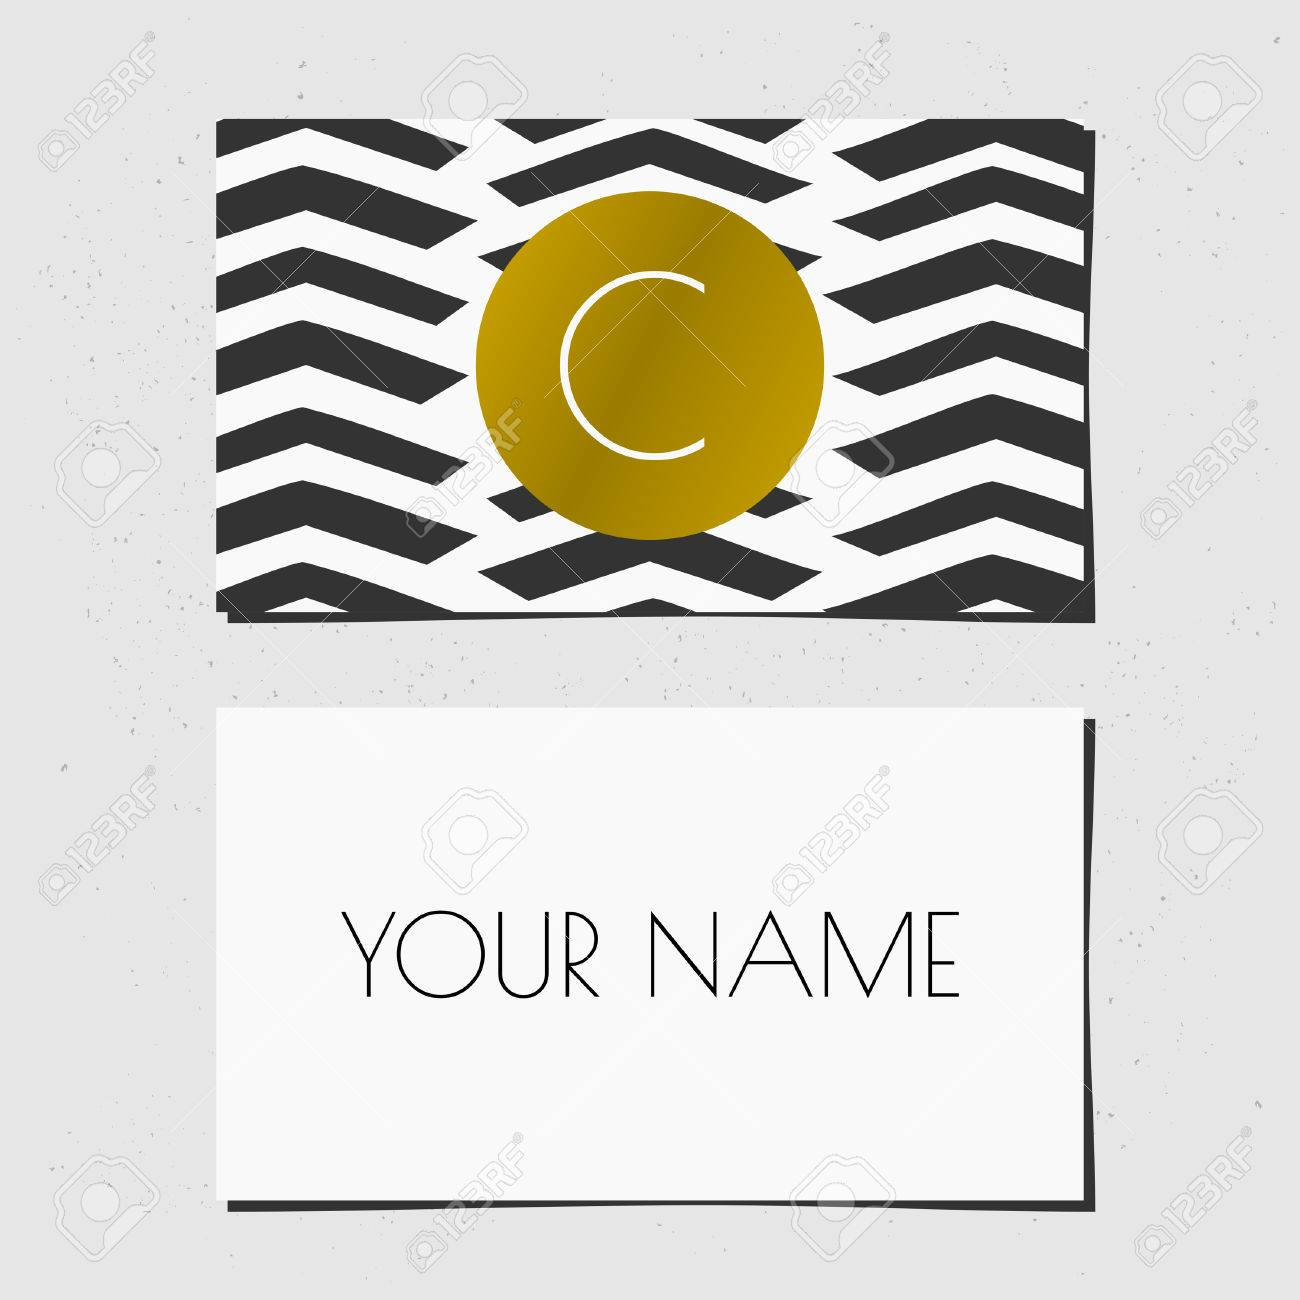 Modern business card template design golden circle with monogram modern business card template design golden circle with monogram letter on a black and white pronofoot35fo Images